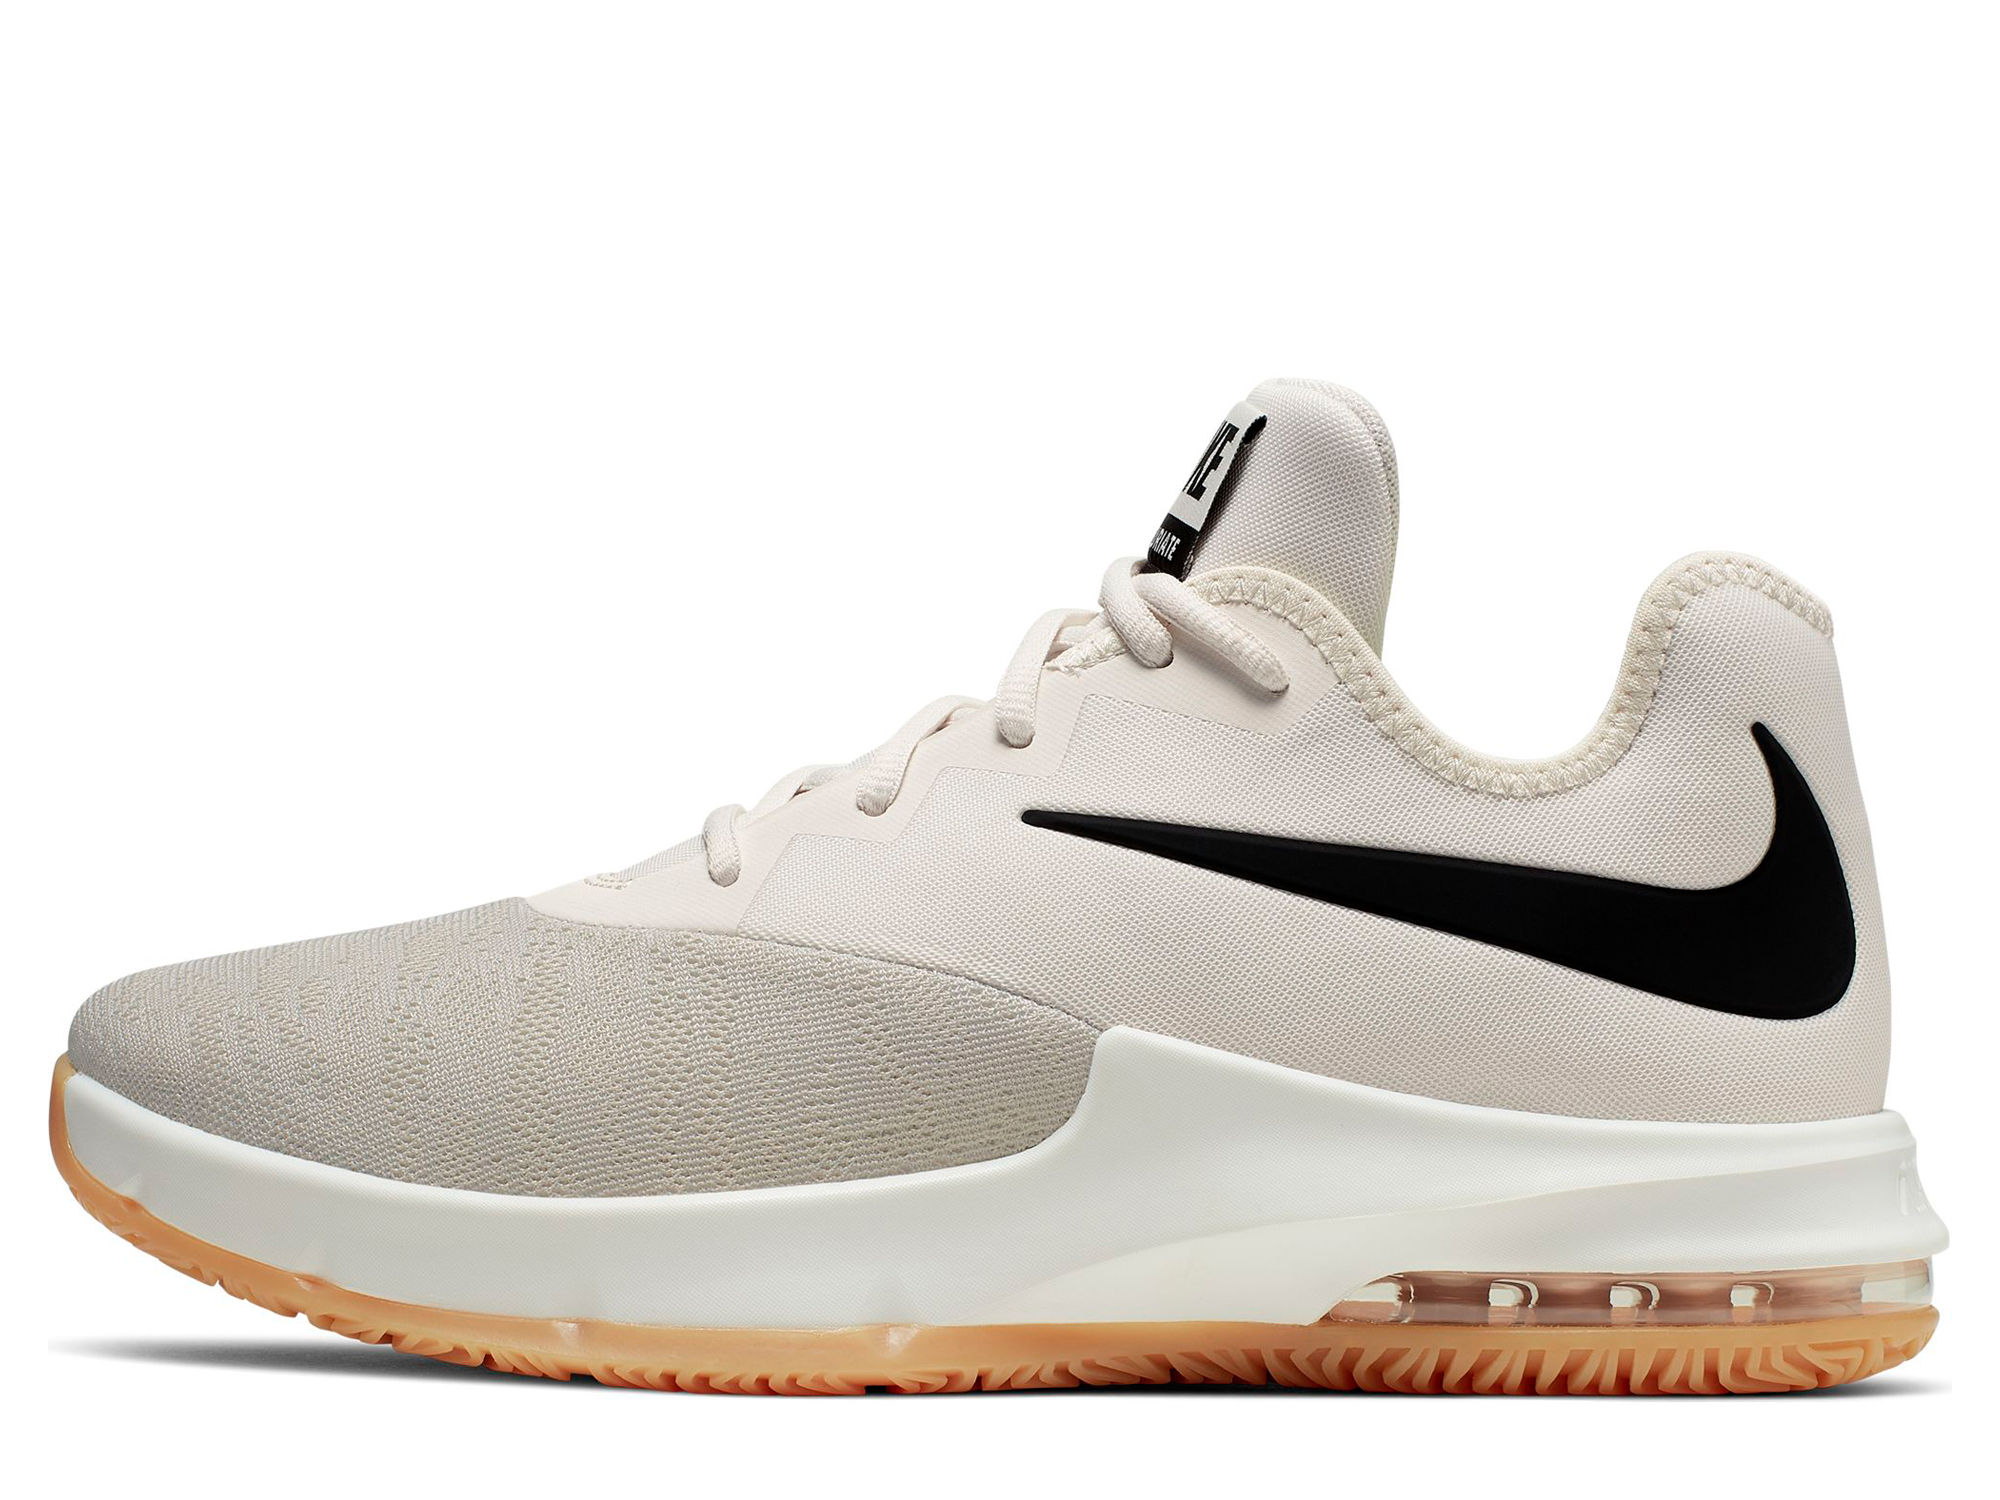 Nike Air Max Infuriate III Low Herren Basketballschuh